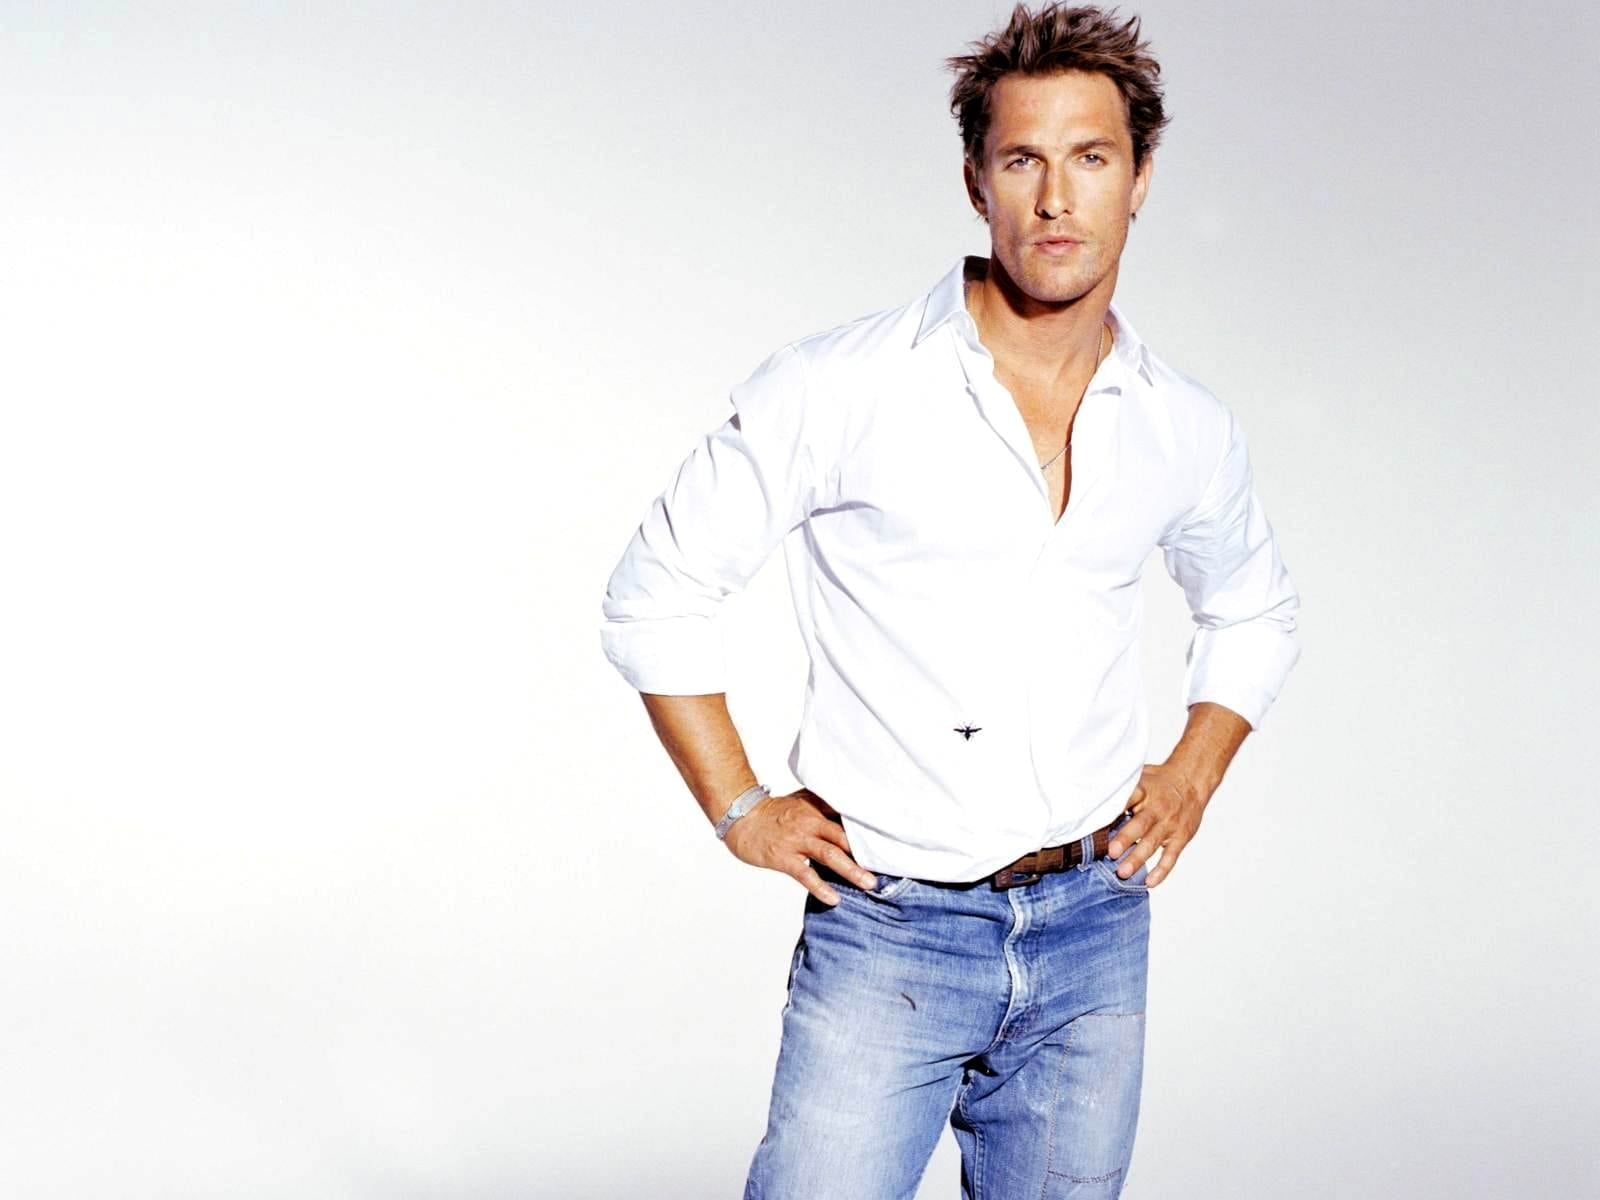 Matthew Mcconaughey for mobile